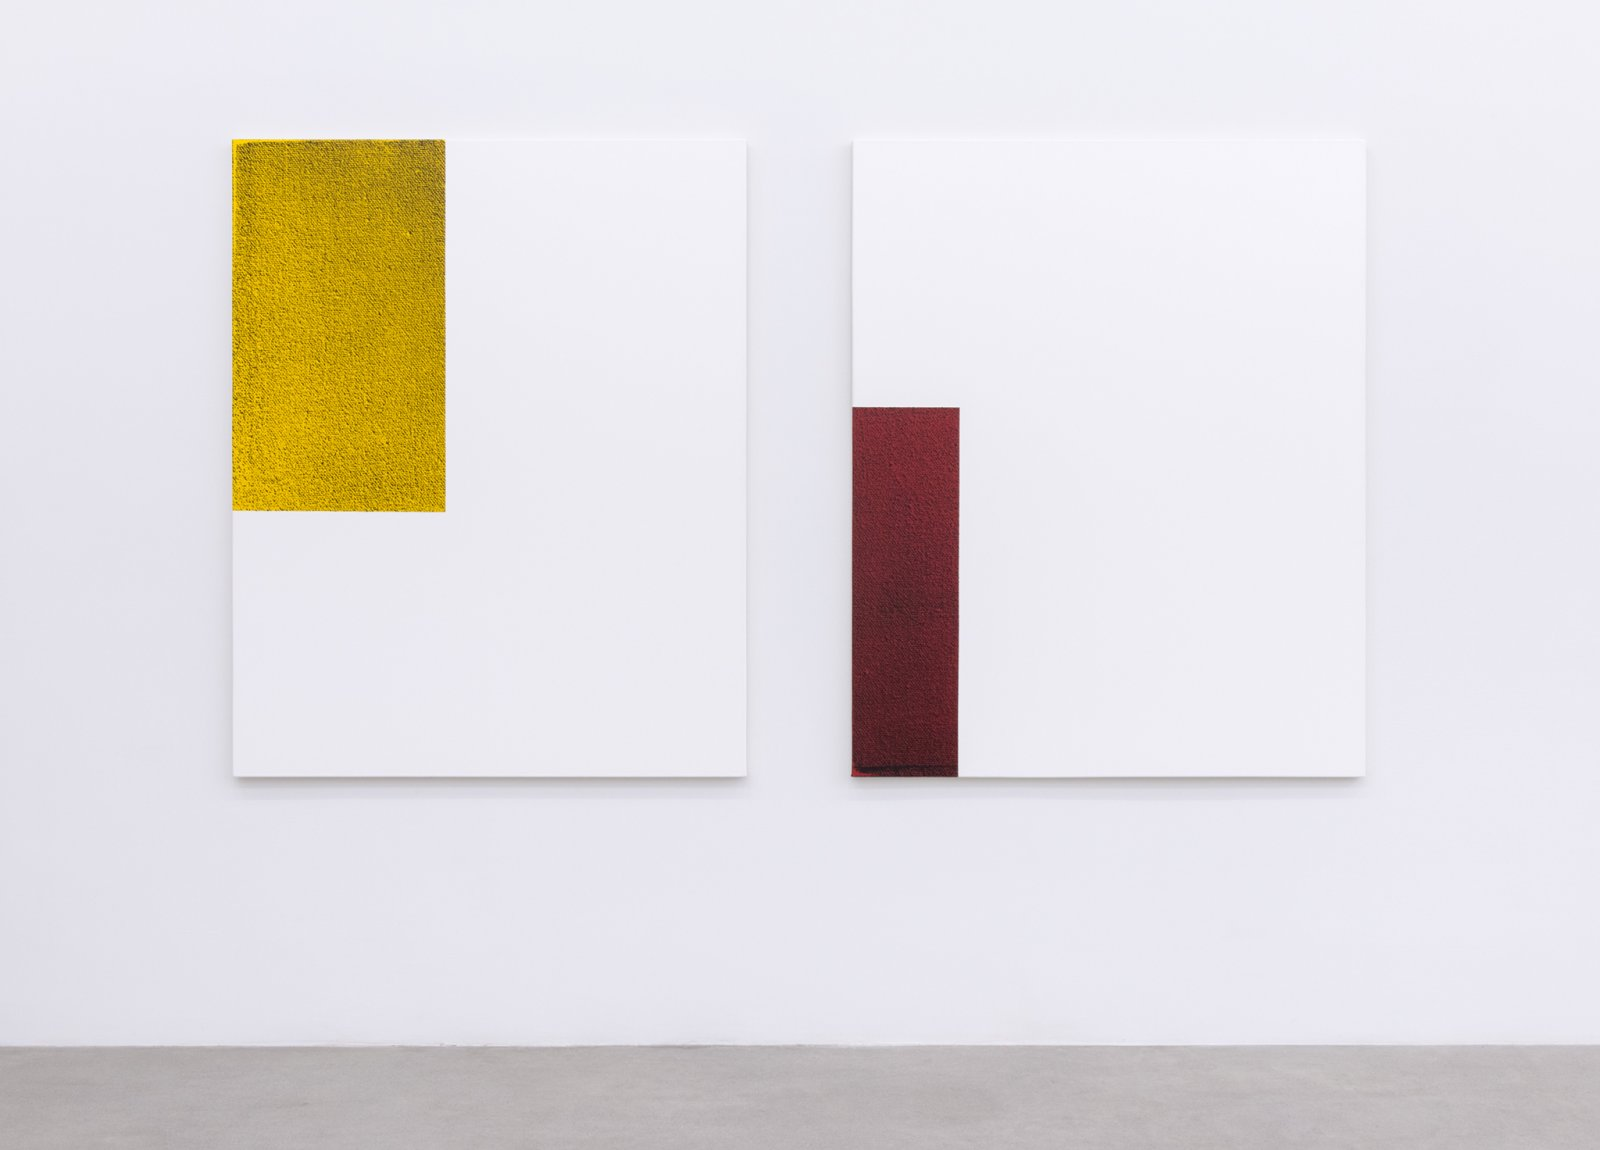 Ian Wallace, Untitled (Monochrome Structure II), 2014, diptych, silkscreen and acrylic on canvas, each 60 x 48 in. (153 x 122 cm) by Ian Wallace